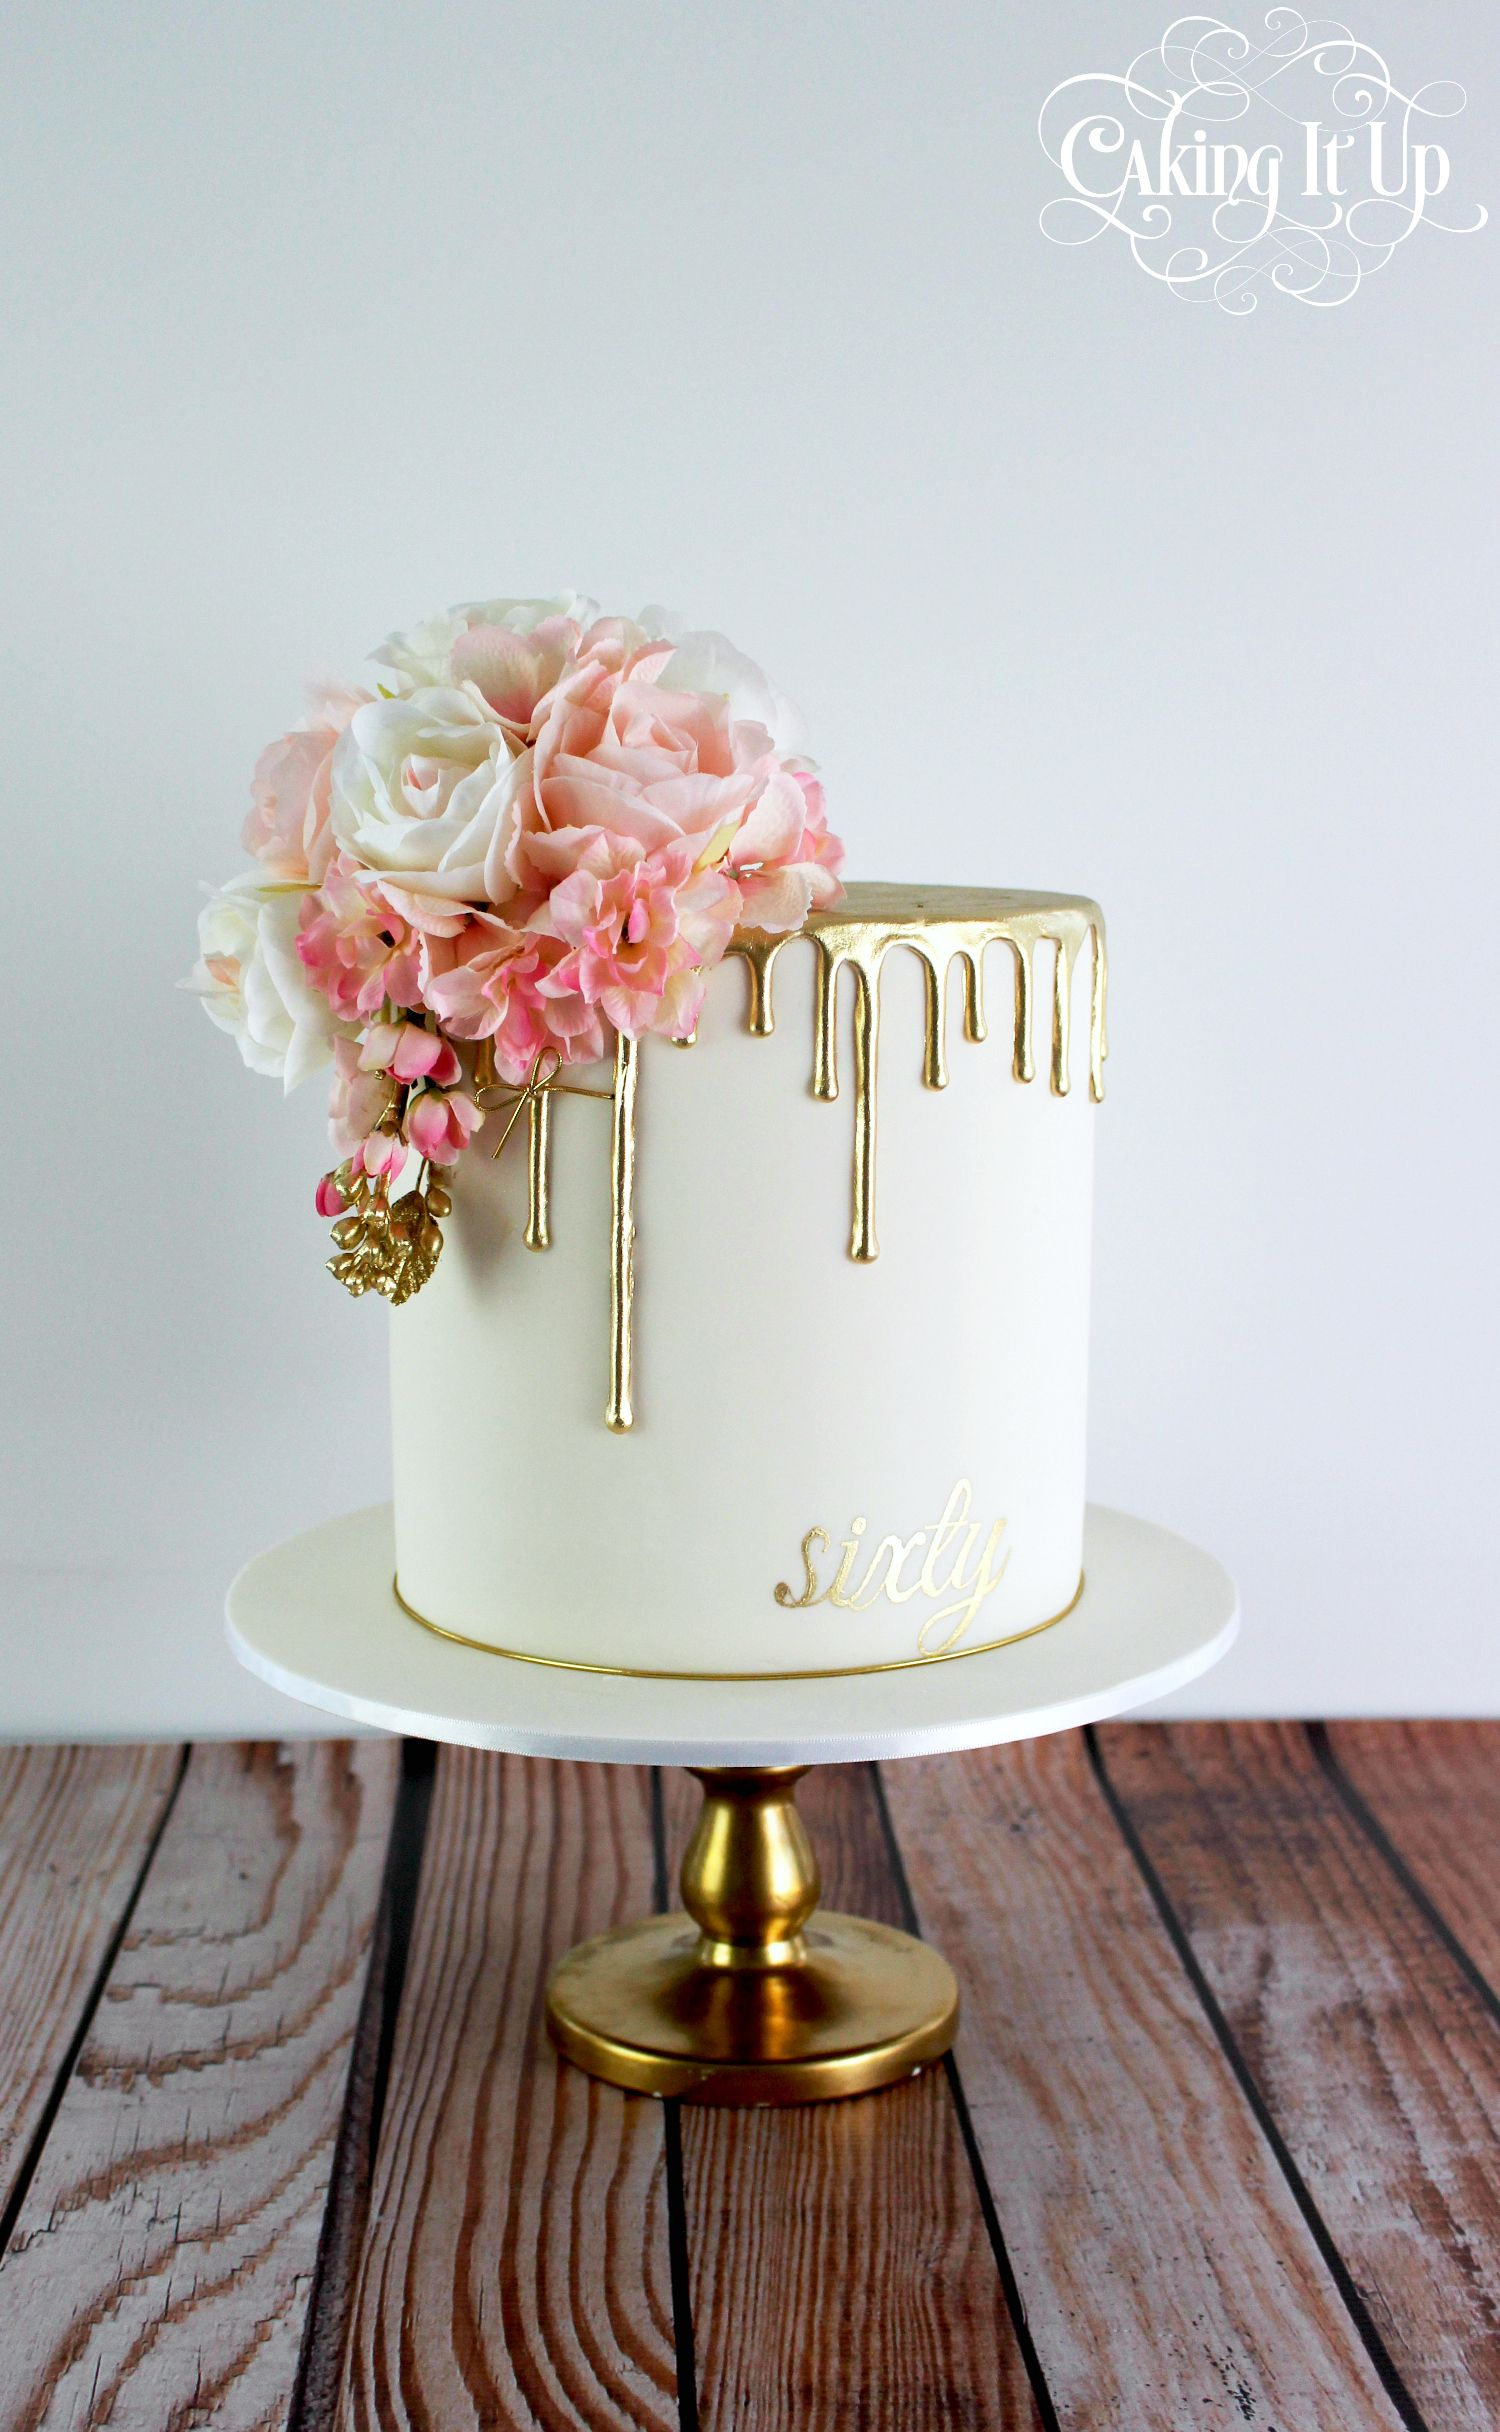 23+ Inspiration Photo of Classy Birthday Cakes